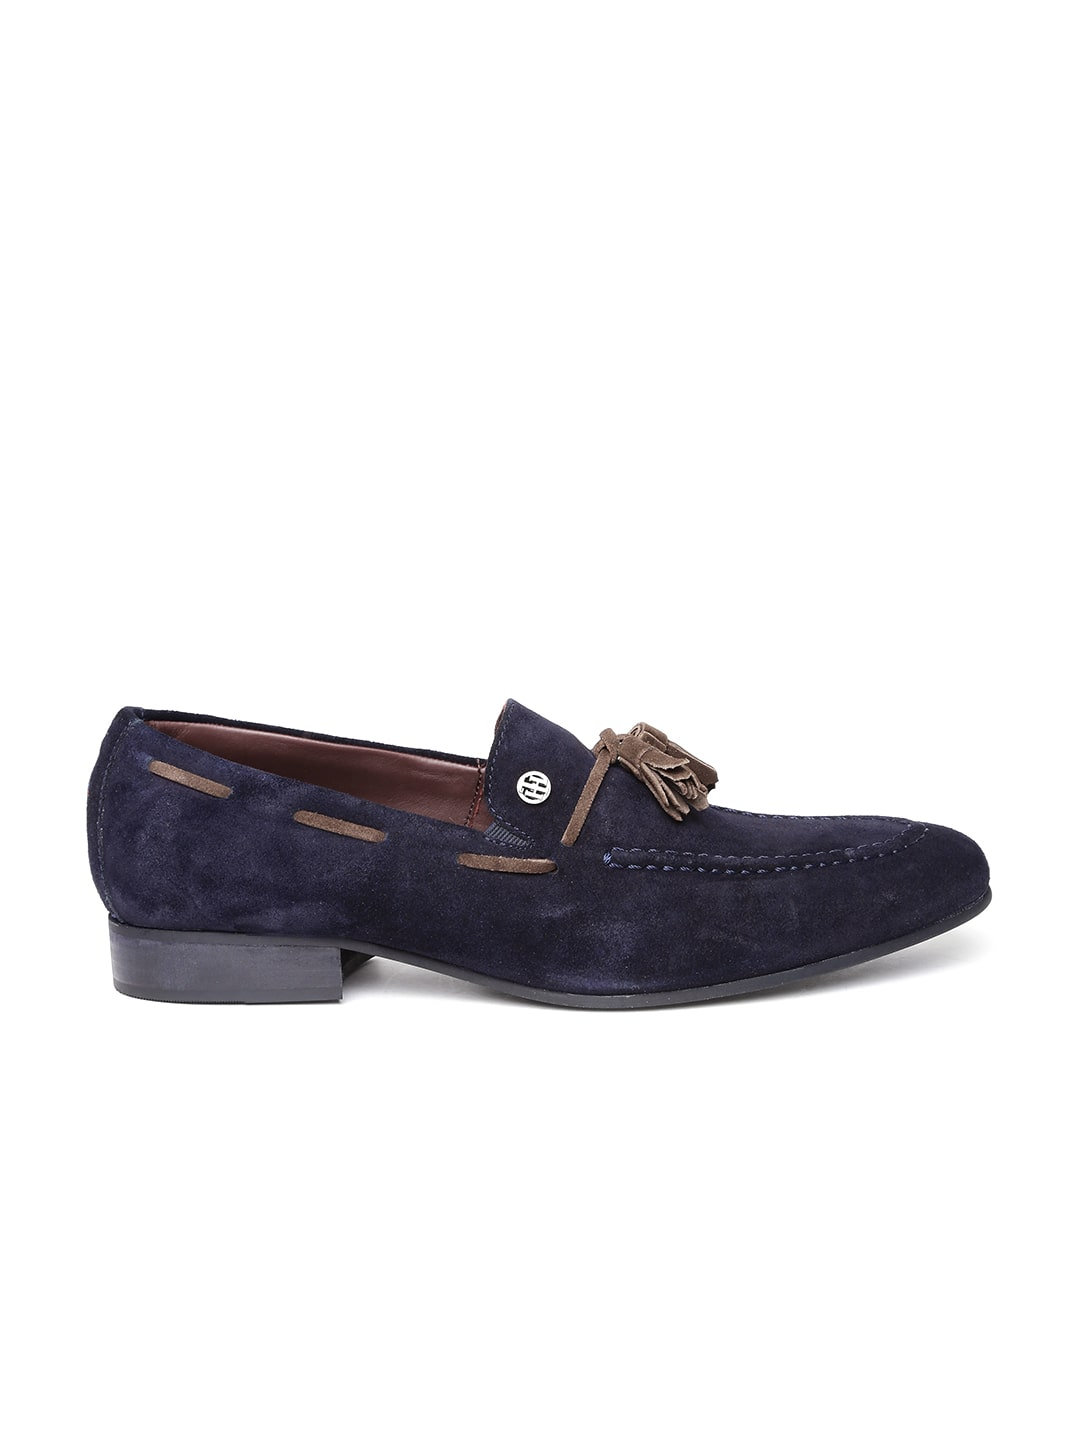 499885aafbb6 Tommy hilfiger a6amf046 Men Brown Leather Loafers - Best Price in ...